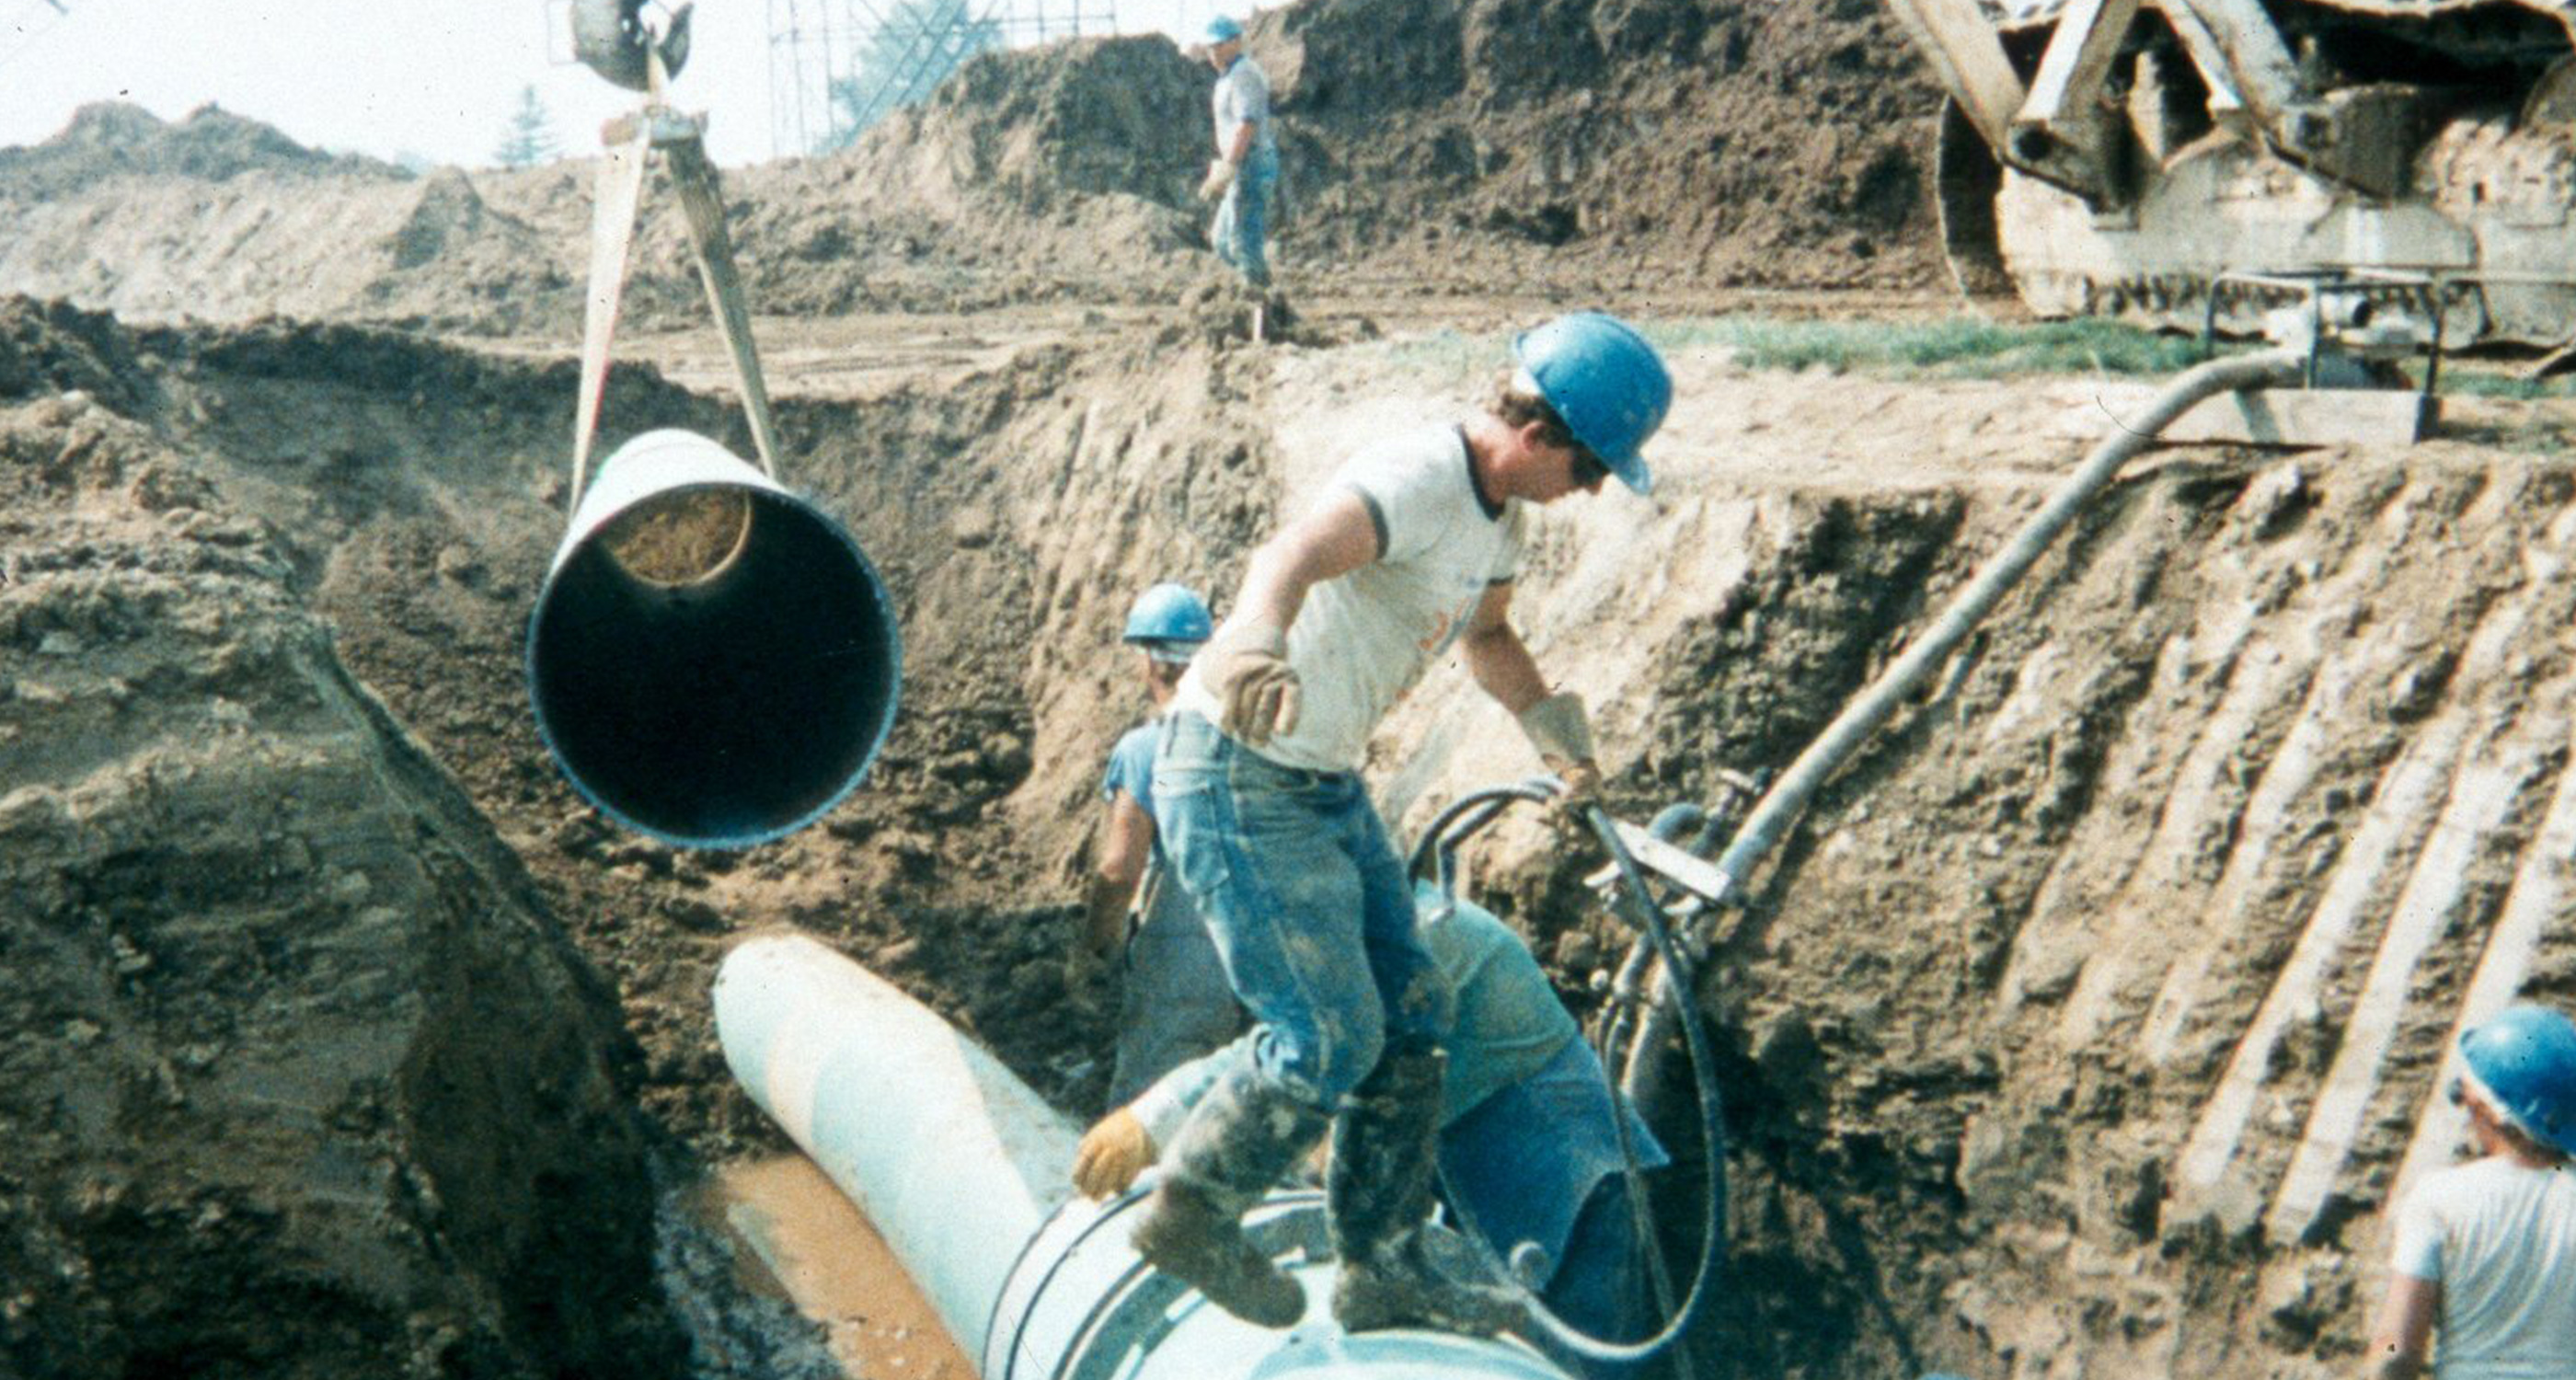 Corrosion Service installing pipelines